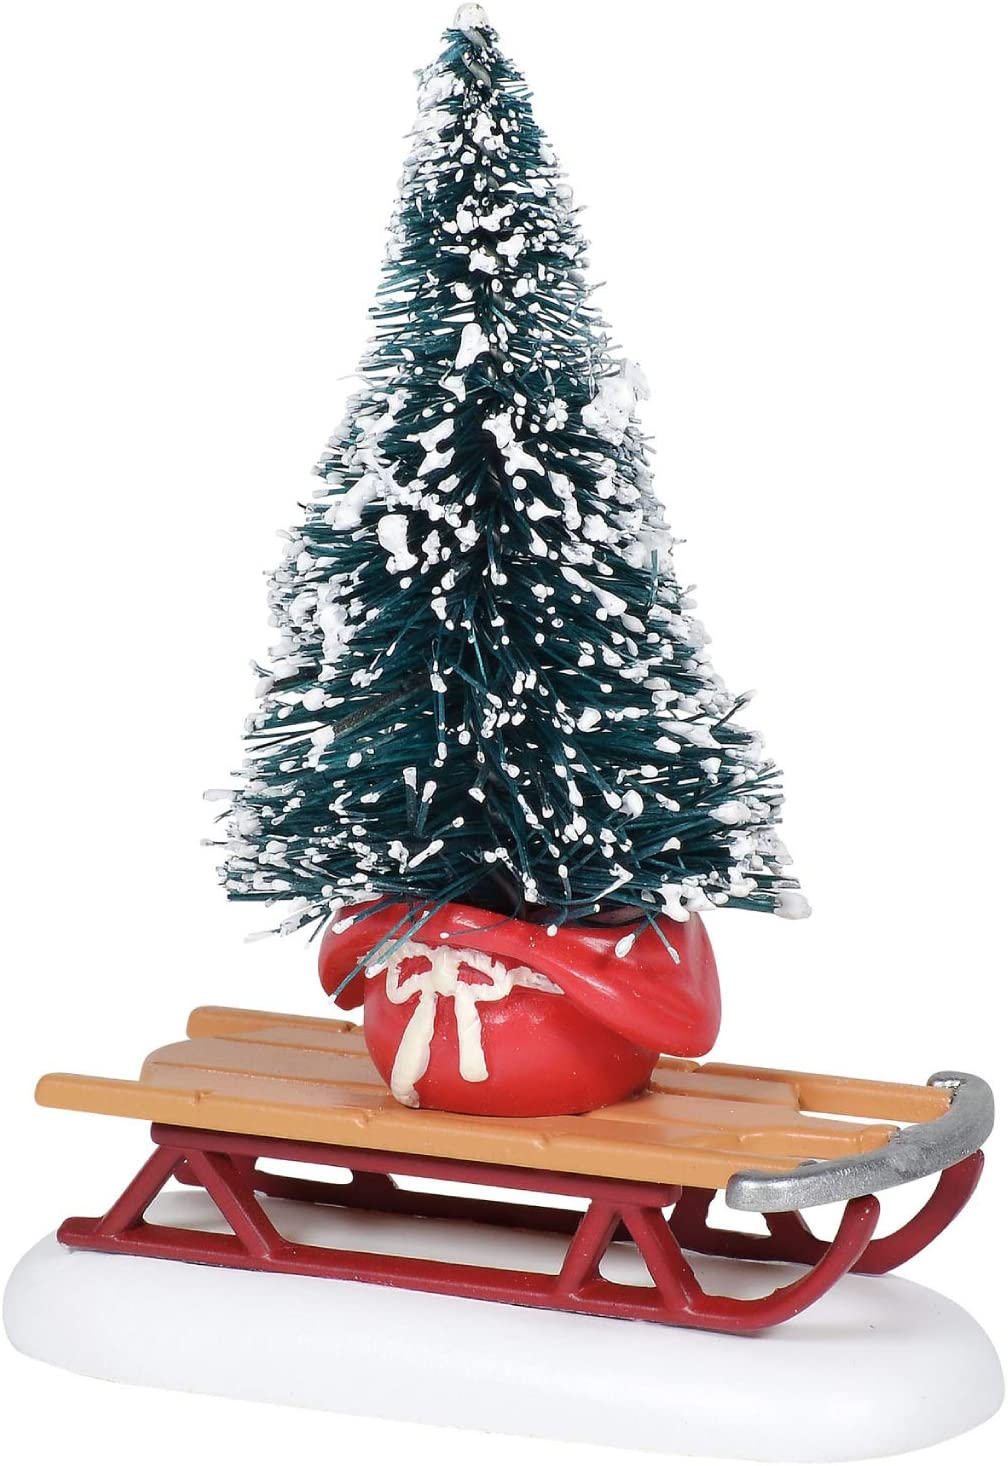 Department 56 Village Collection Accessories Christmas Sled Figurine, 3.25 Inch, Multicolor